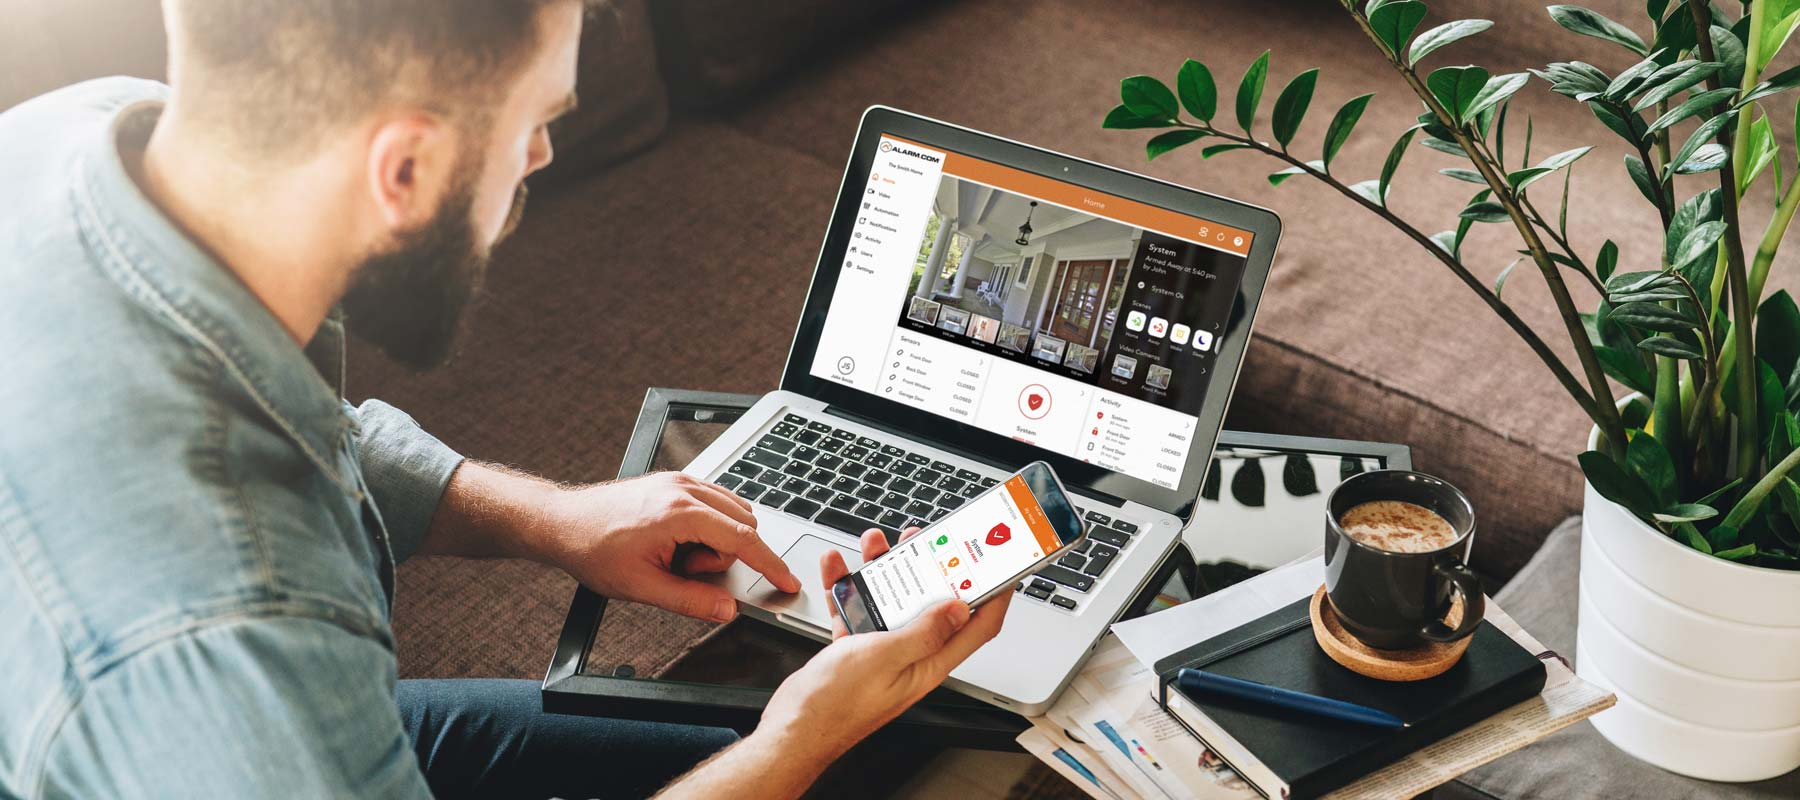 Gain peace-of-mind with interactive security solutions from Secure Tech Alarms